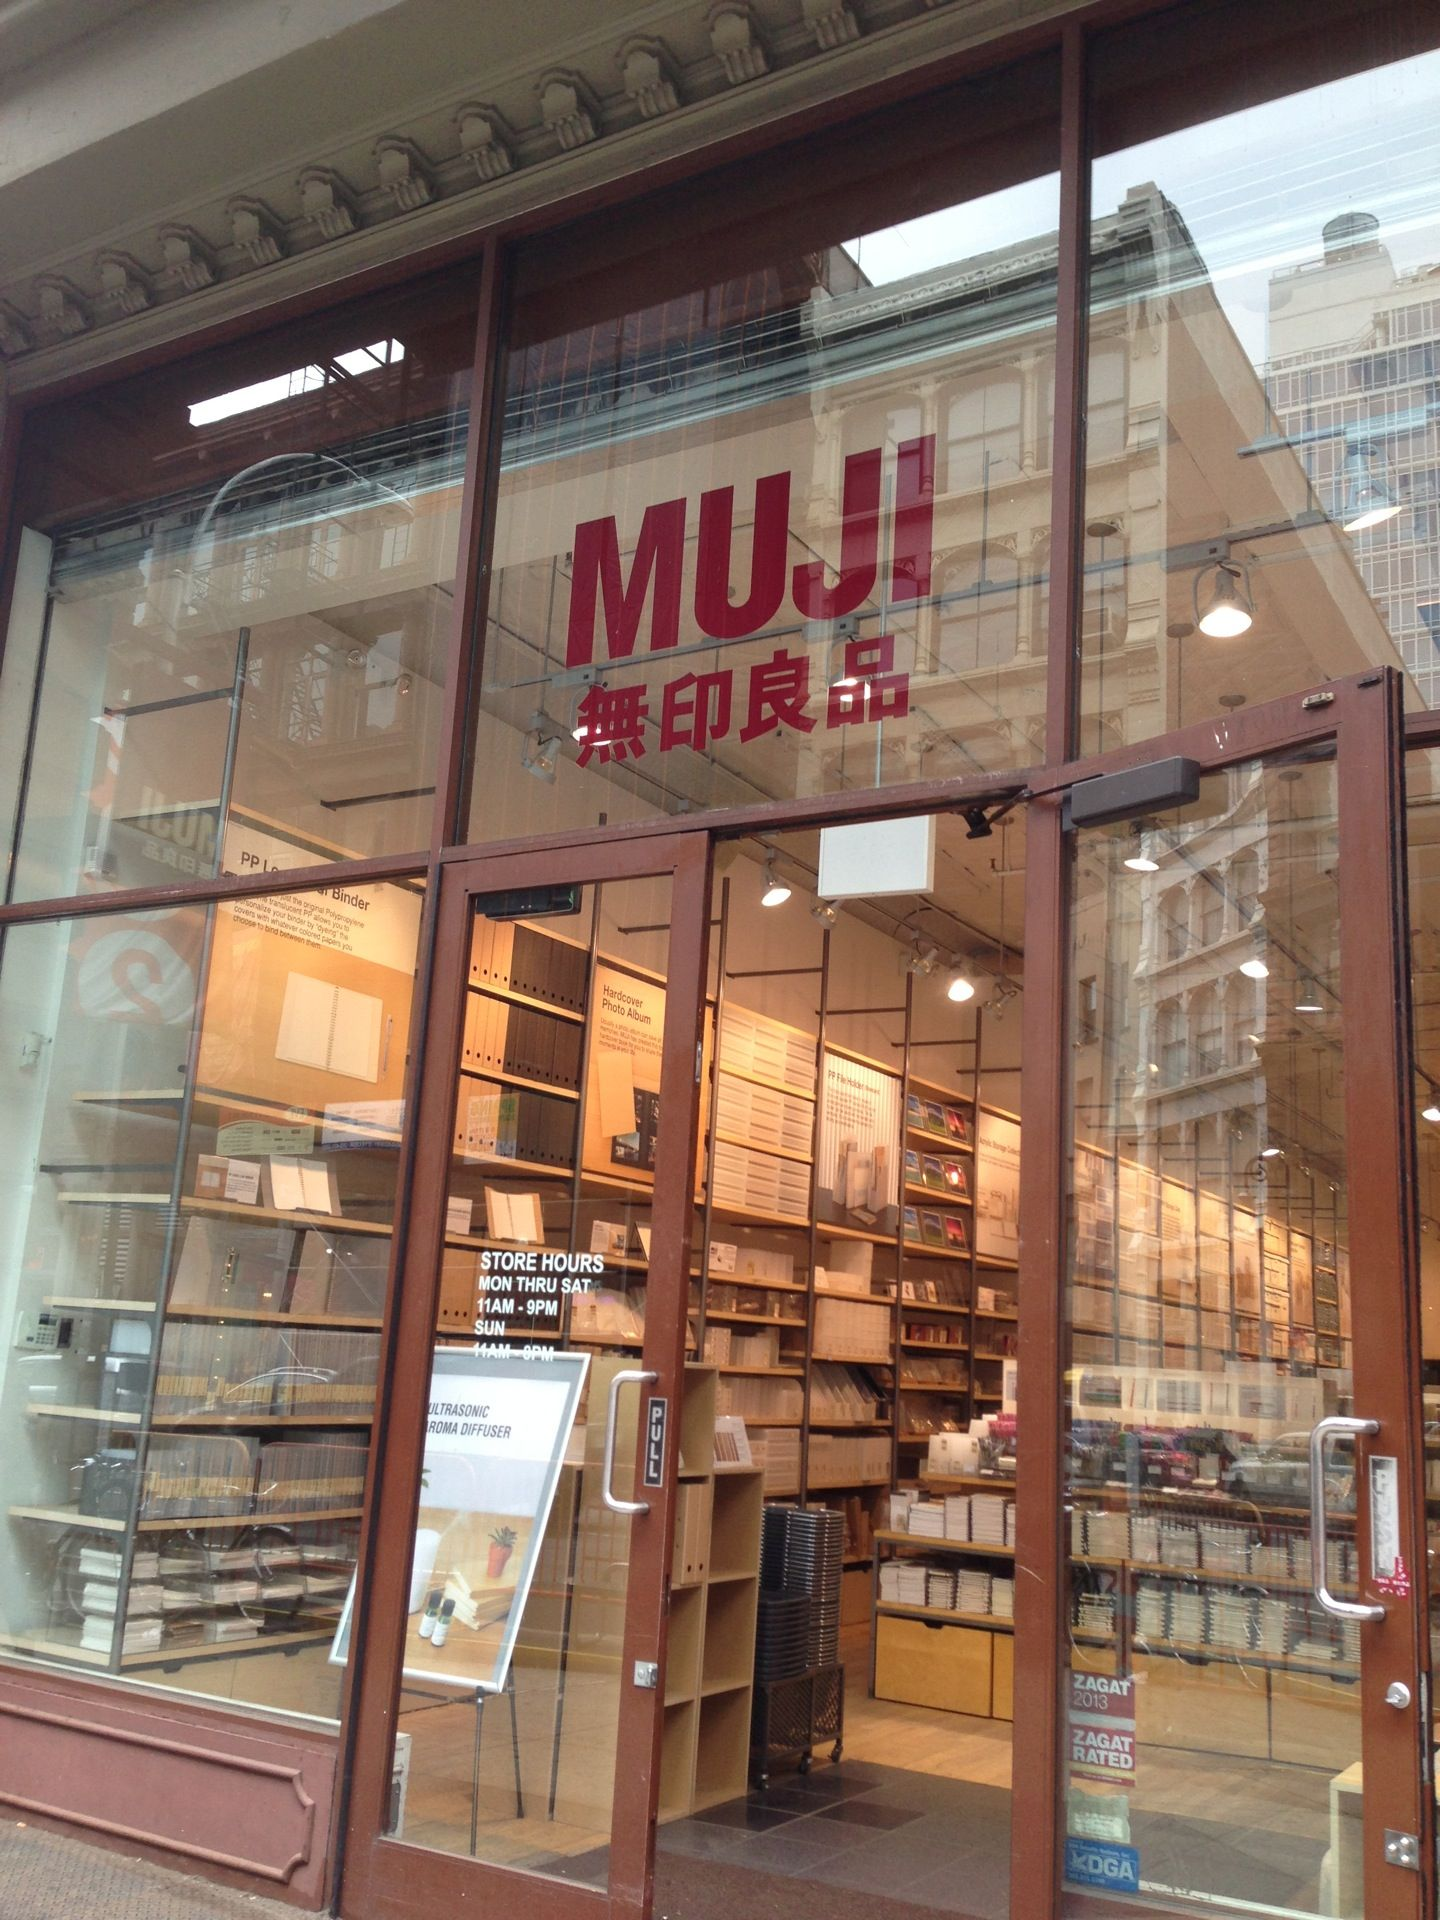 muji sohojapanese design at affordable prices, which means i'll